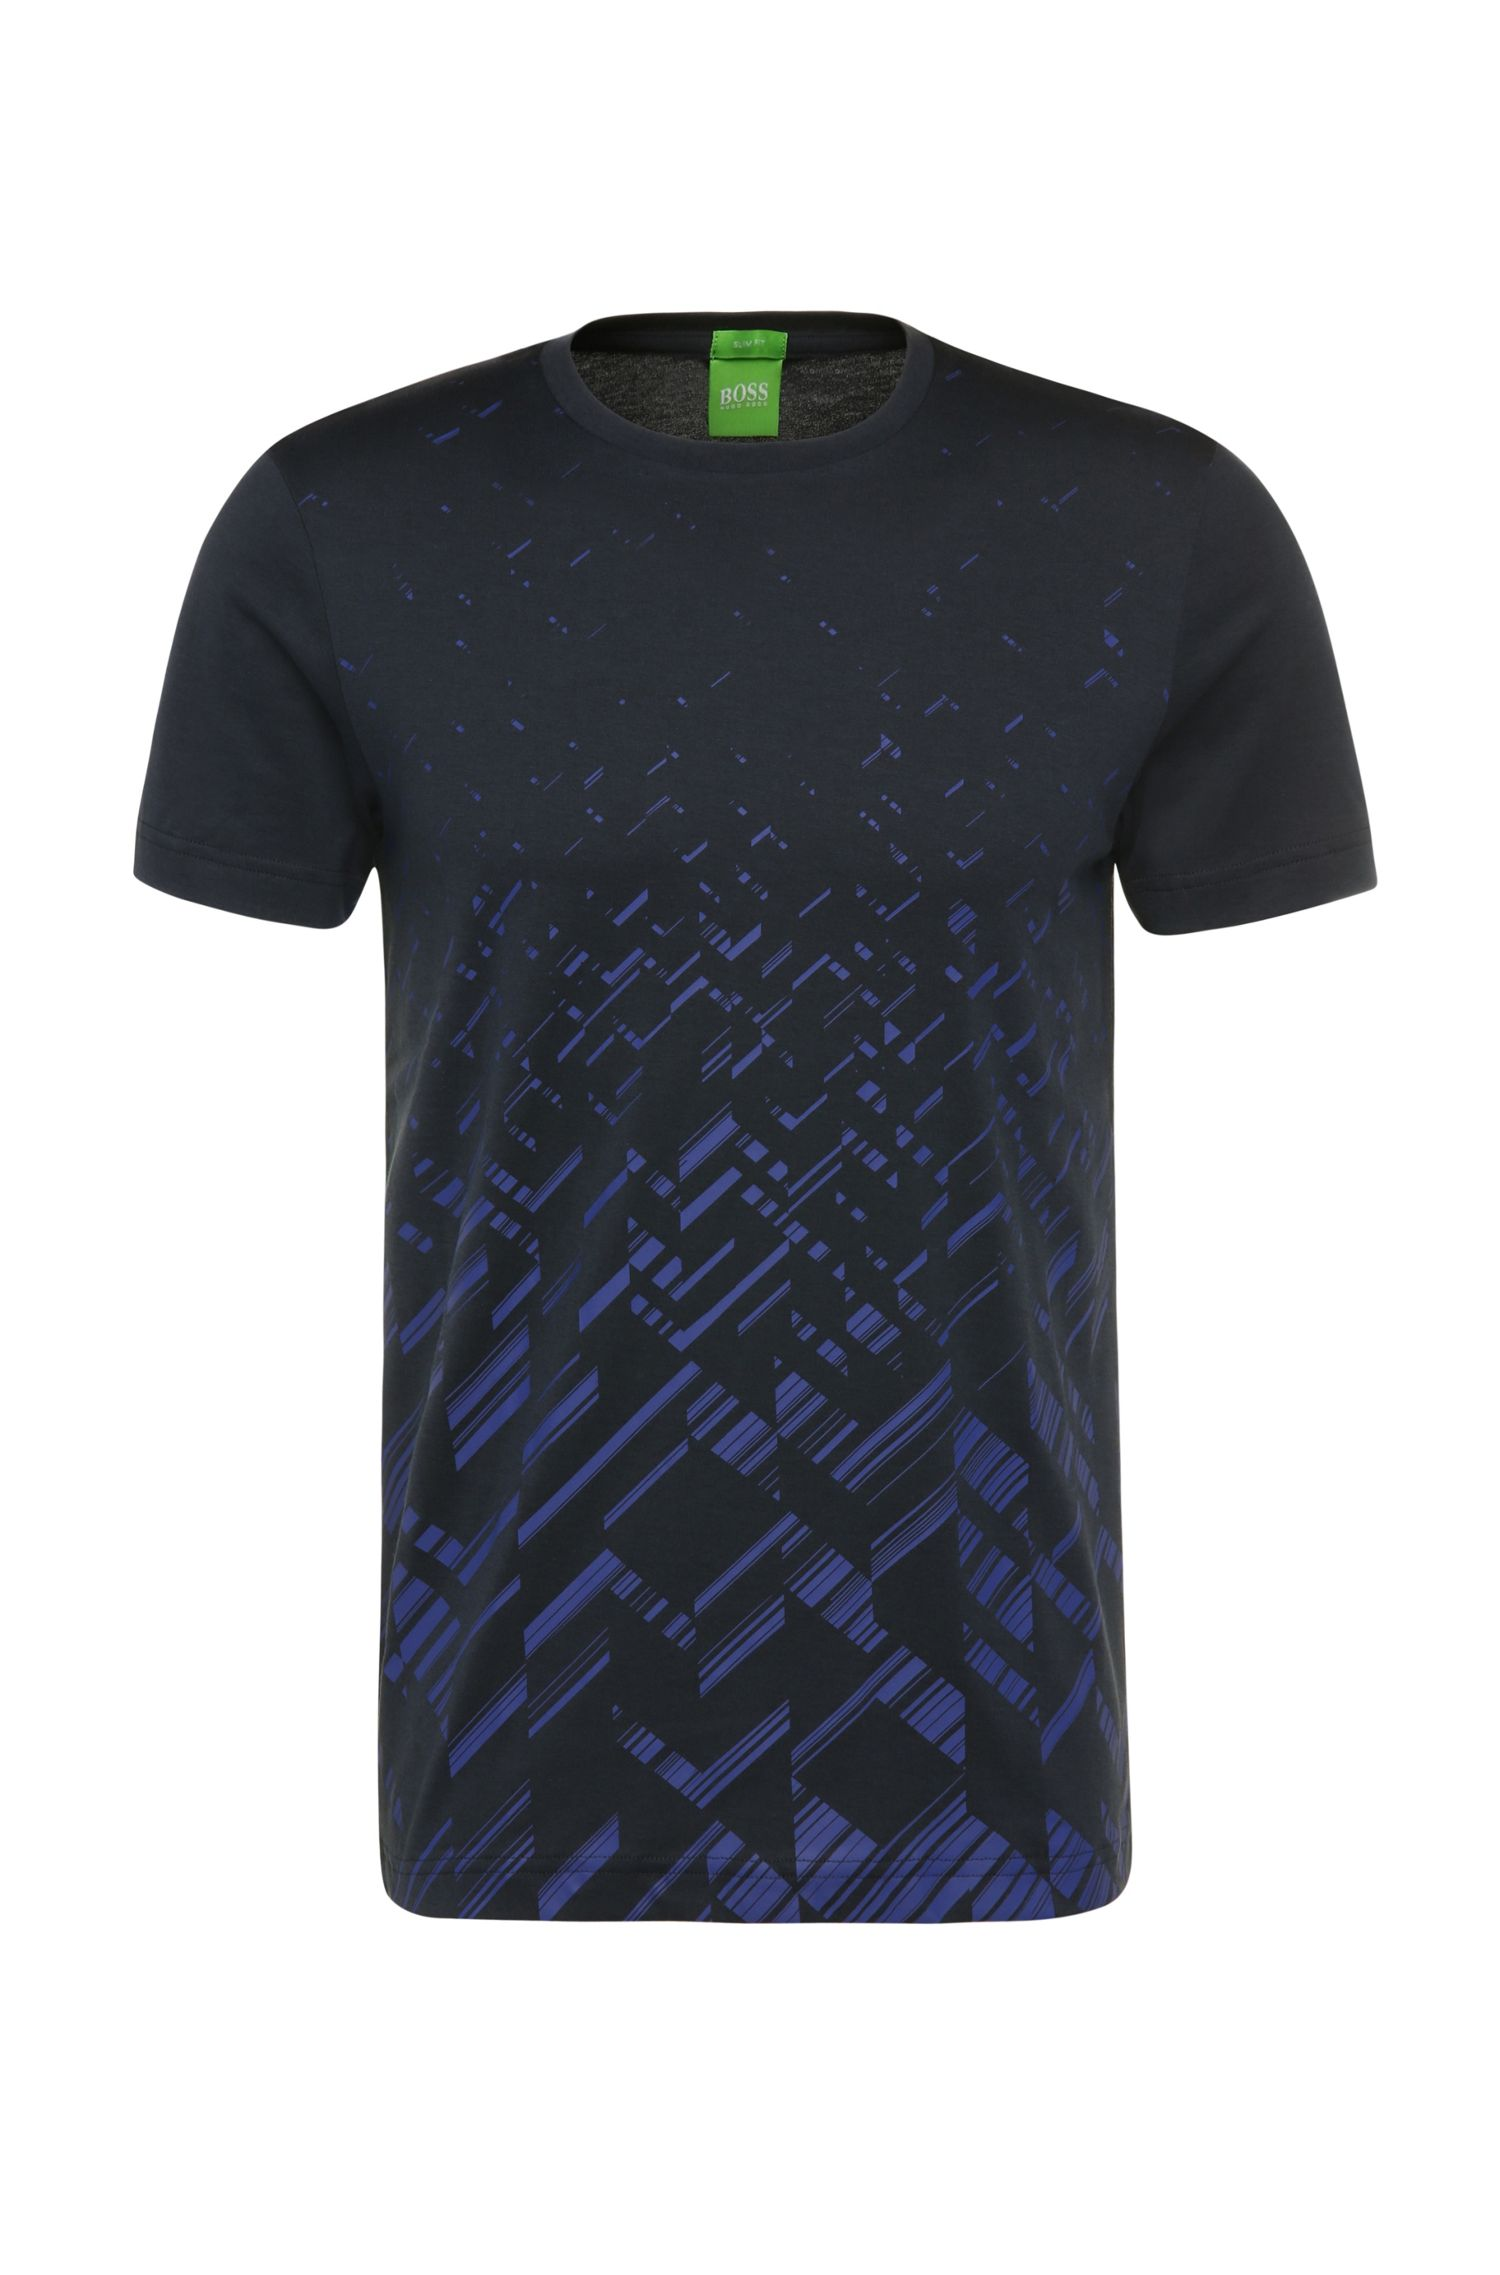 'Teeocell'   Cotton Lyocell Patterned T-Shirt